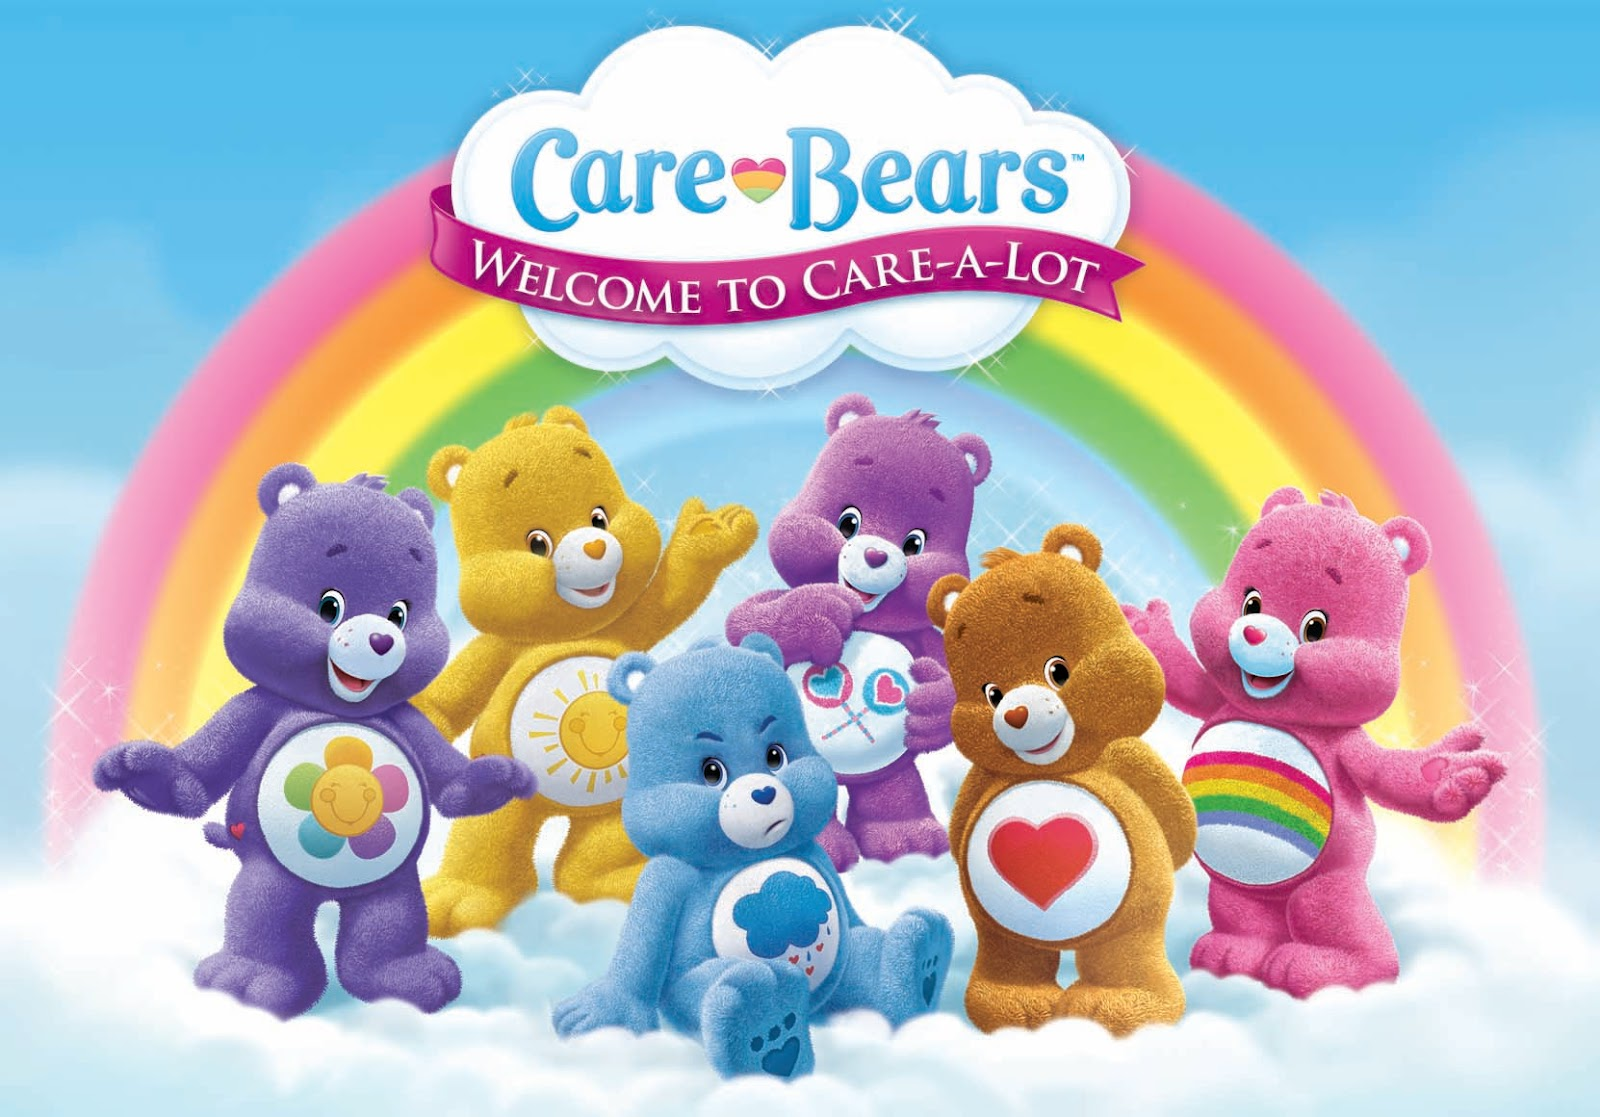 Care+Bears+Welcome+to+Care-A-Lot+Logo.jpg